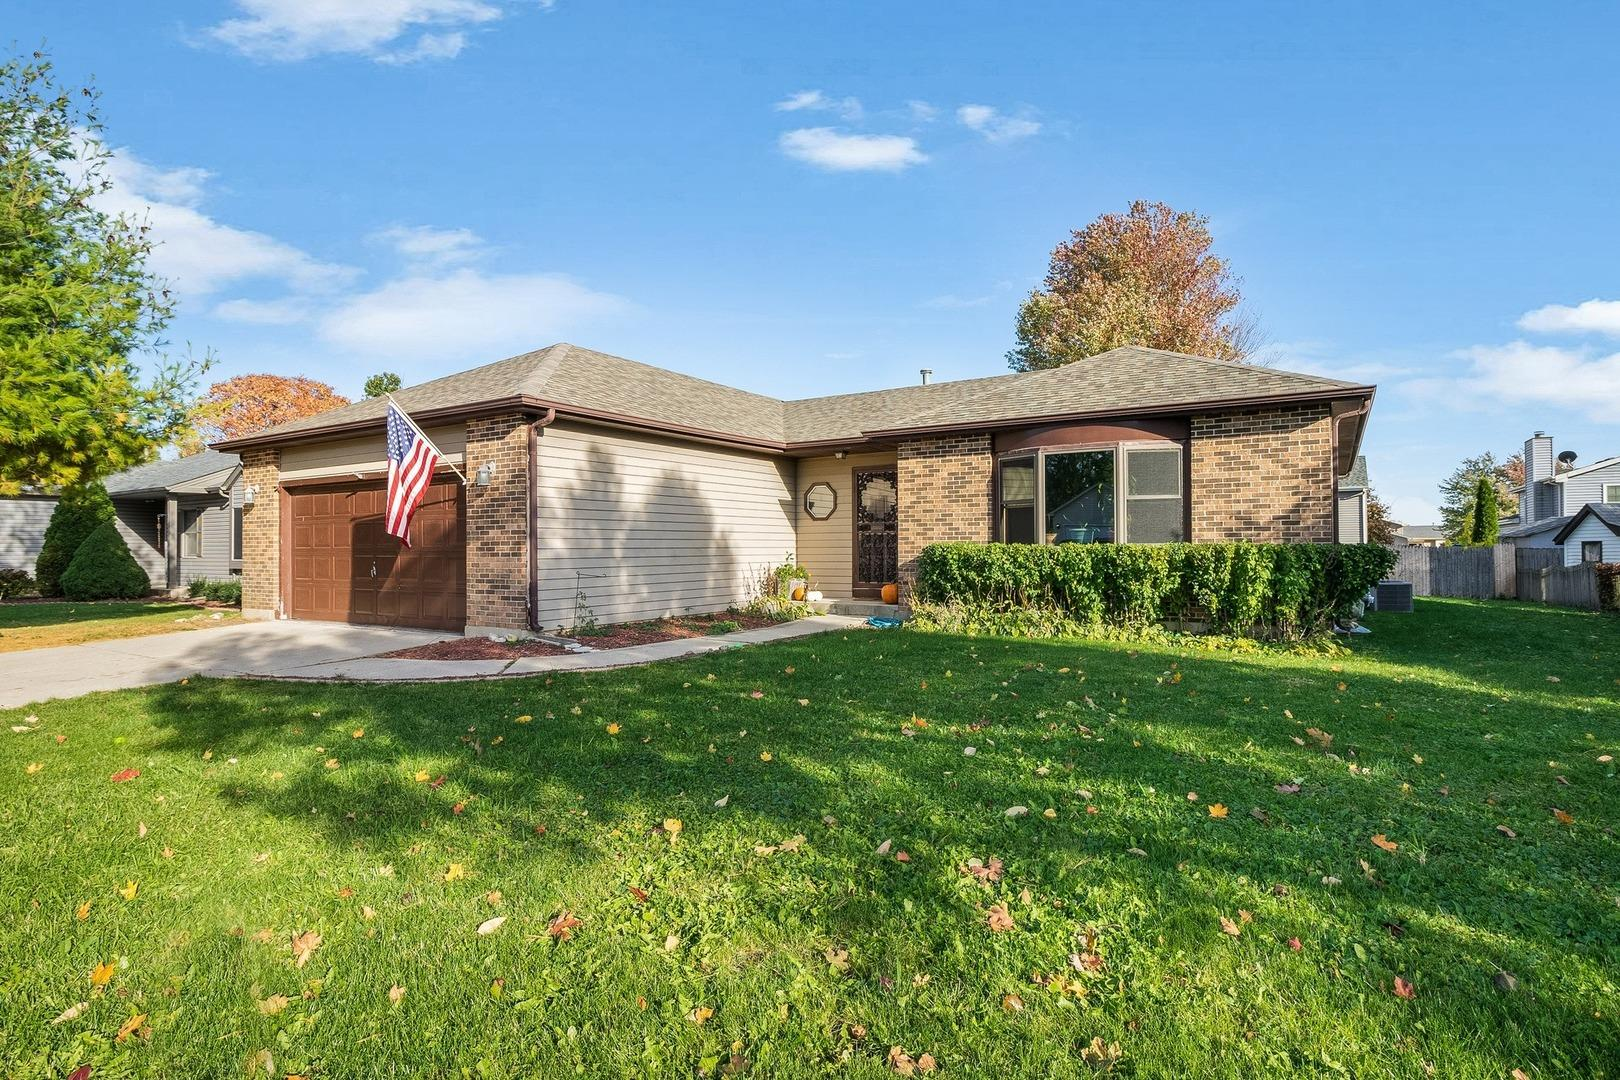 208 S Carriage Trail, McHenry, IL 60050 - #: 11087105